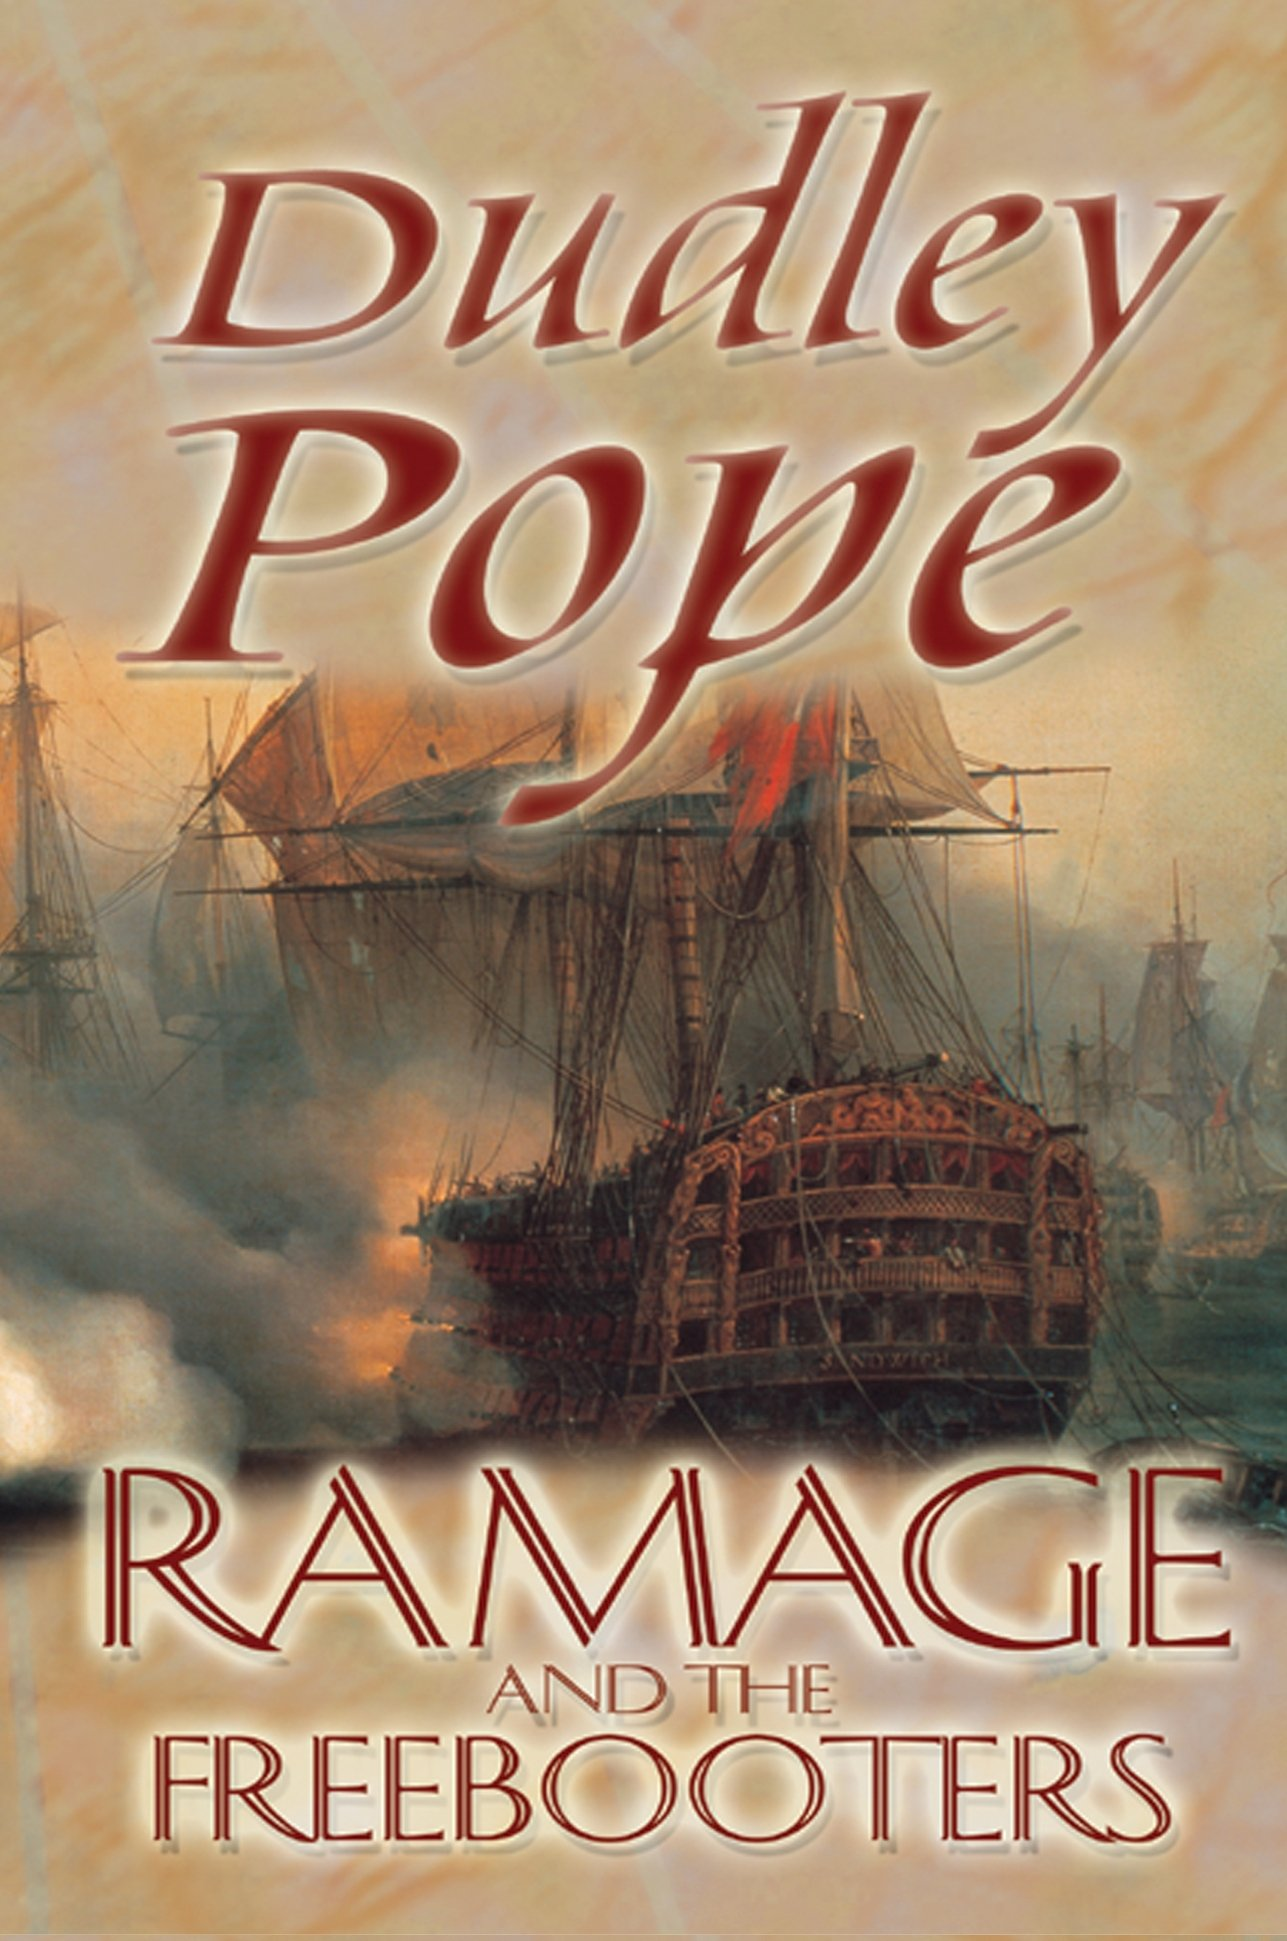 Ramage & The Freebooters (The Lord Ramage Novels Book 3) por Dudley Pope